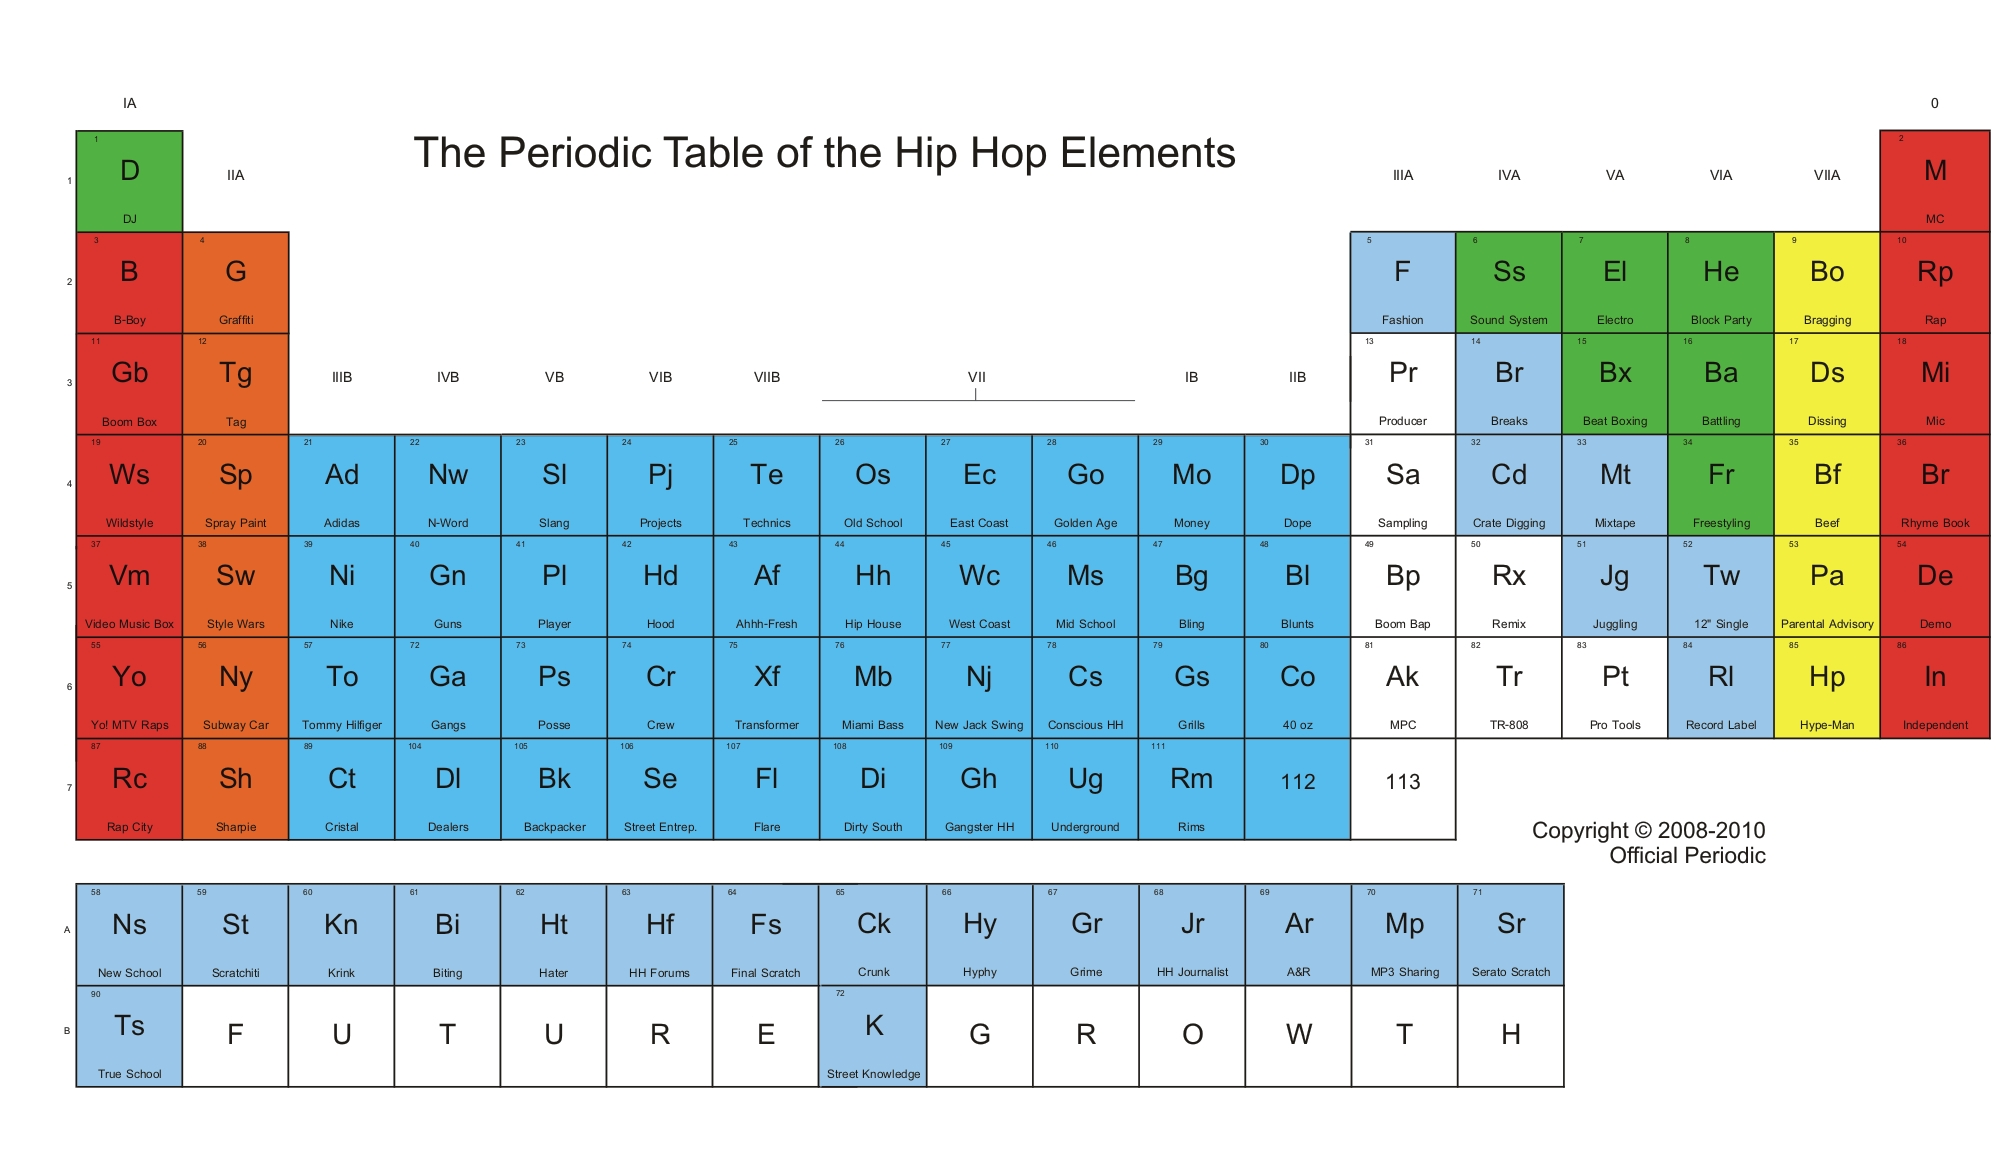 The periodic tableofthehiphopelements the mixtape museum mxm the periodic tableofthehiphopelements urtaz